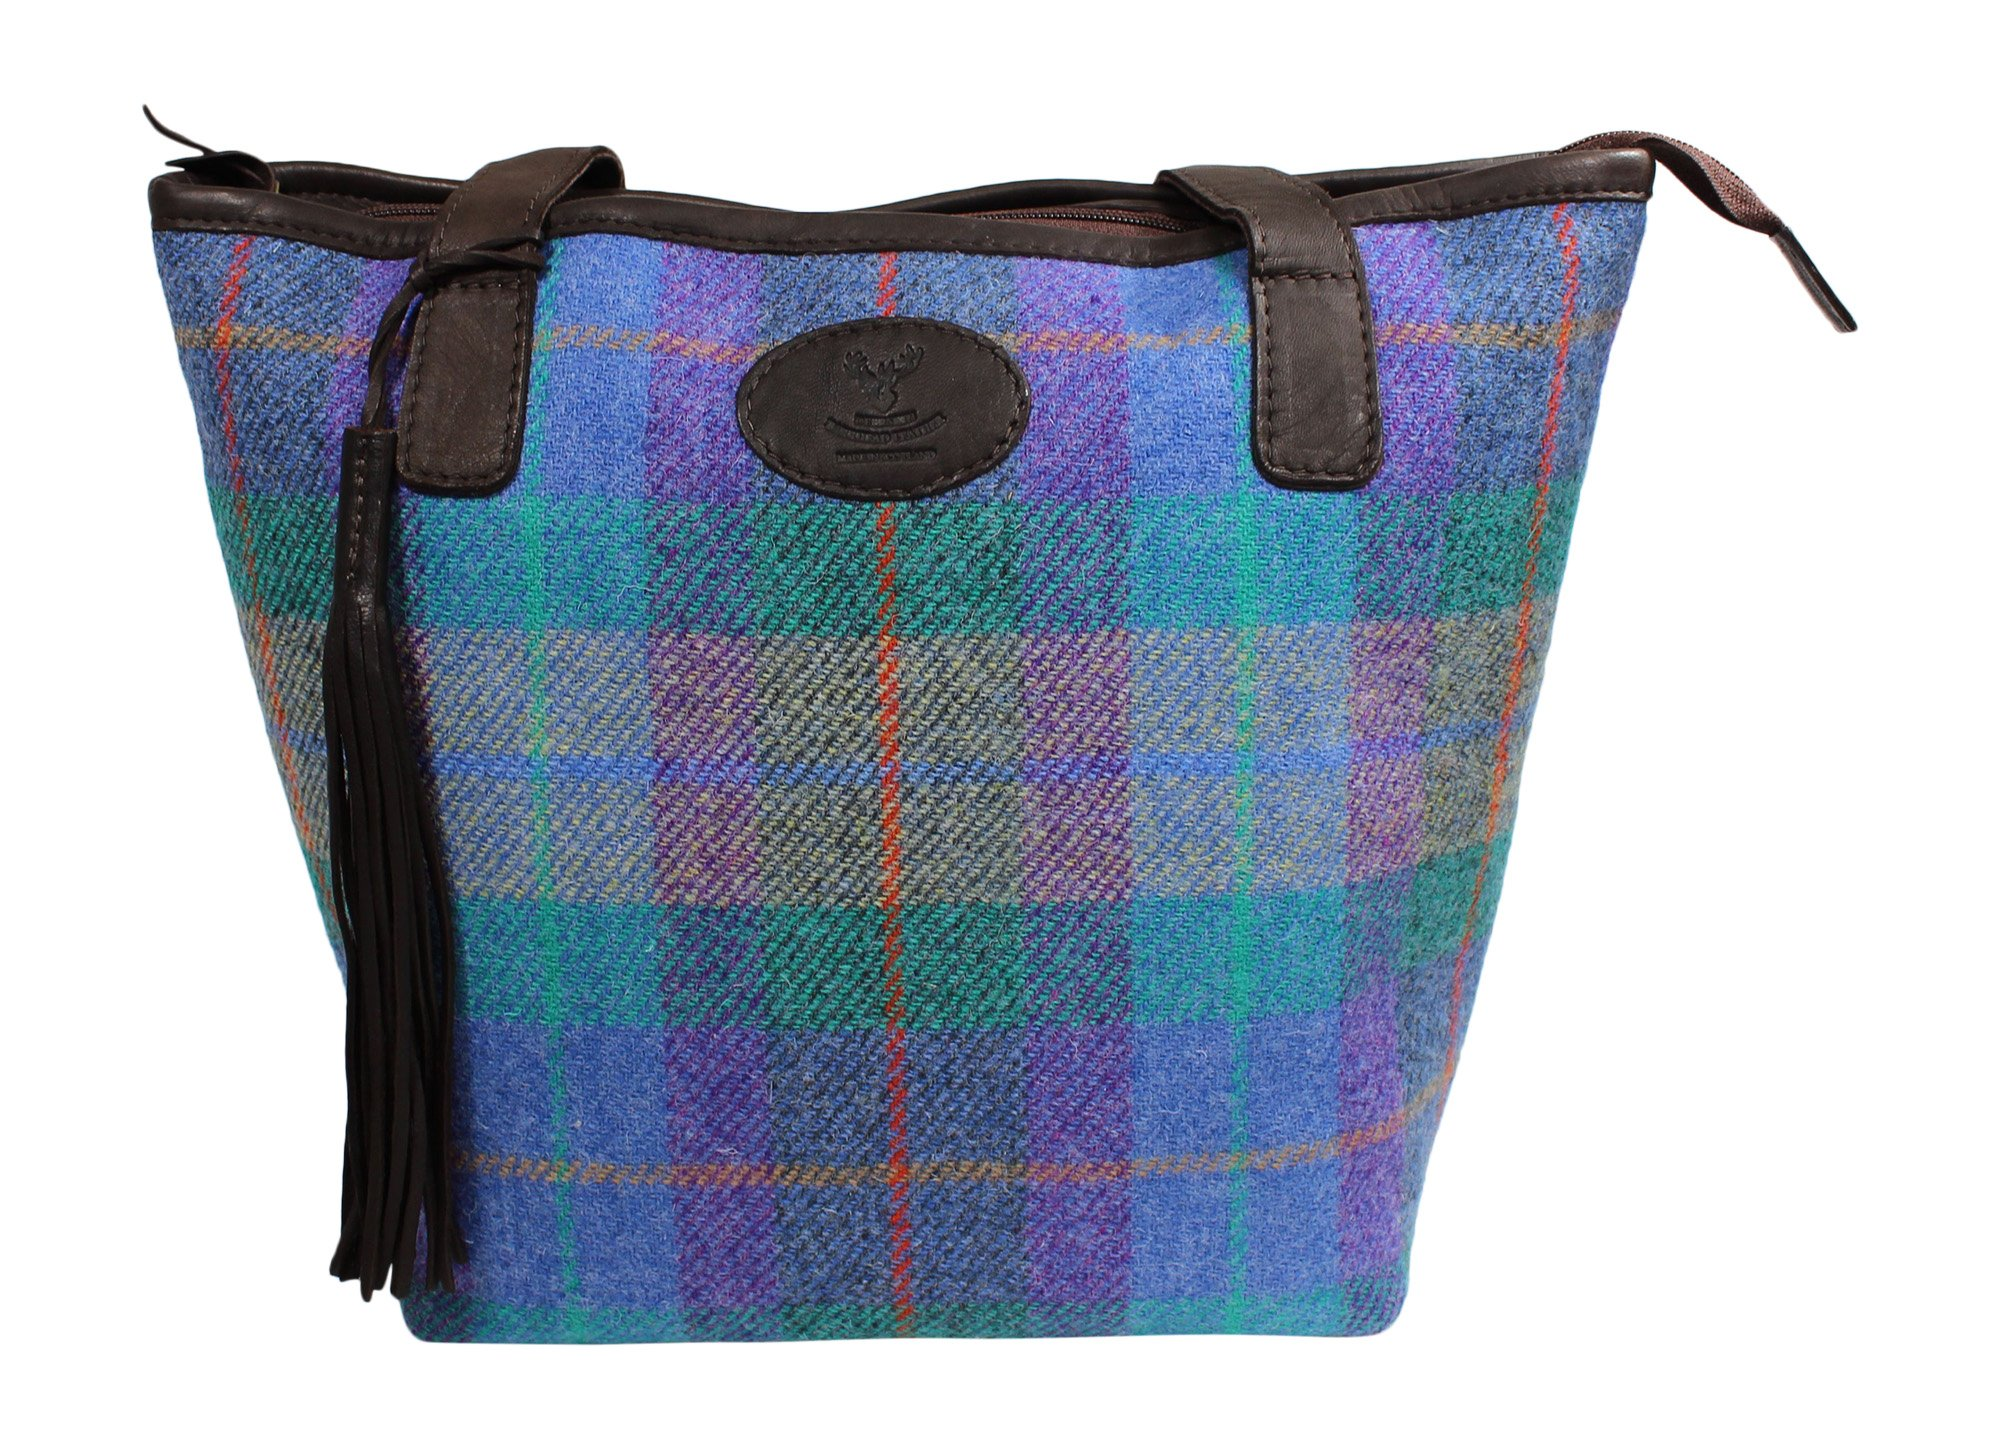 Wild Scottish Deerskin Designer Leather Authentic Herringbone Harris Tweed Large Tote Bag